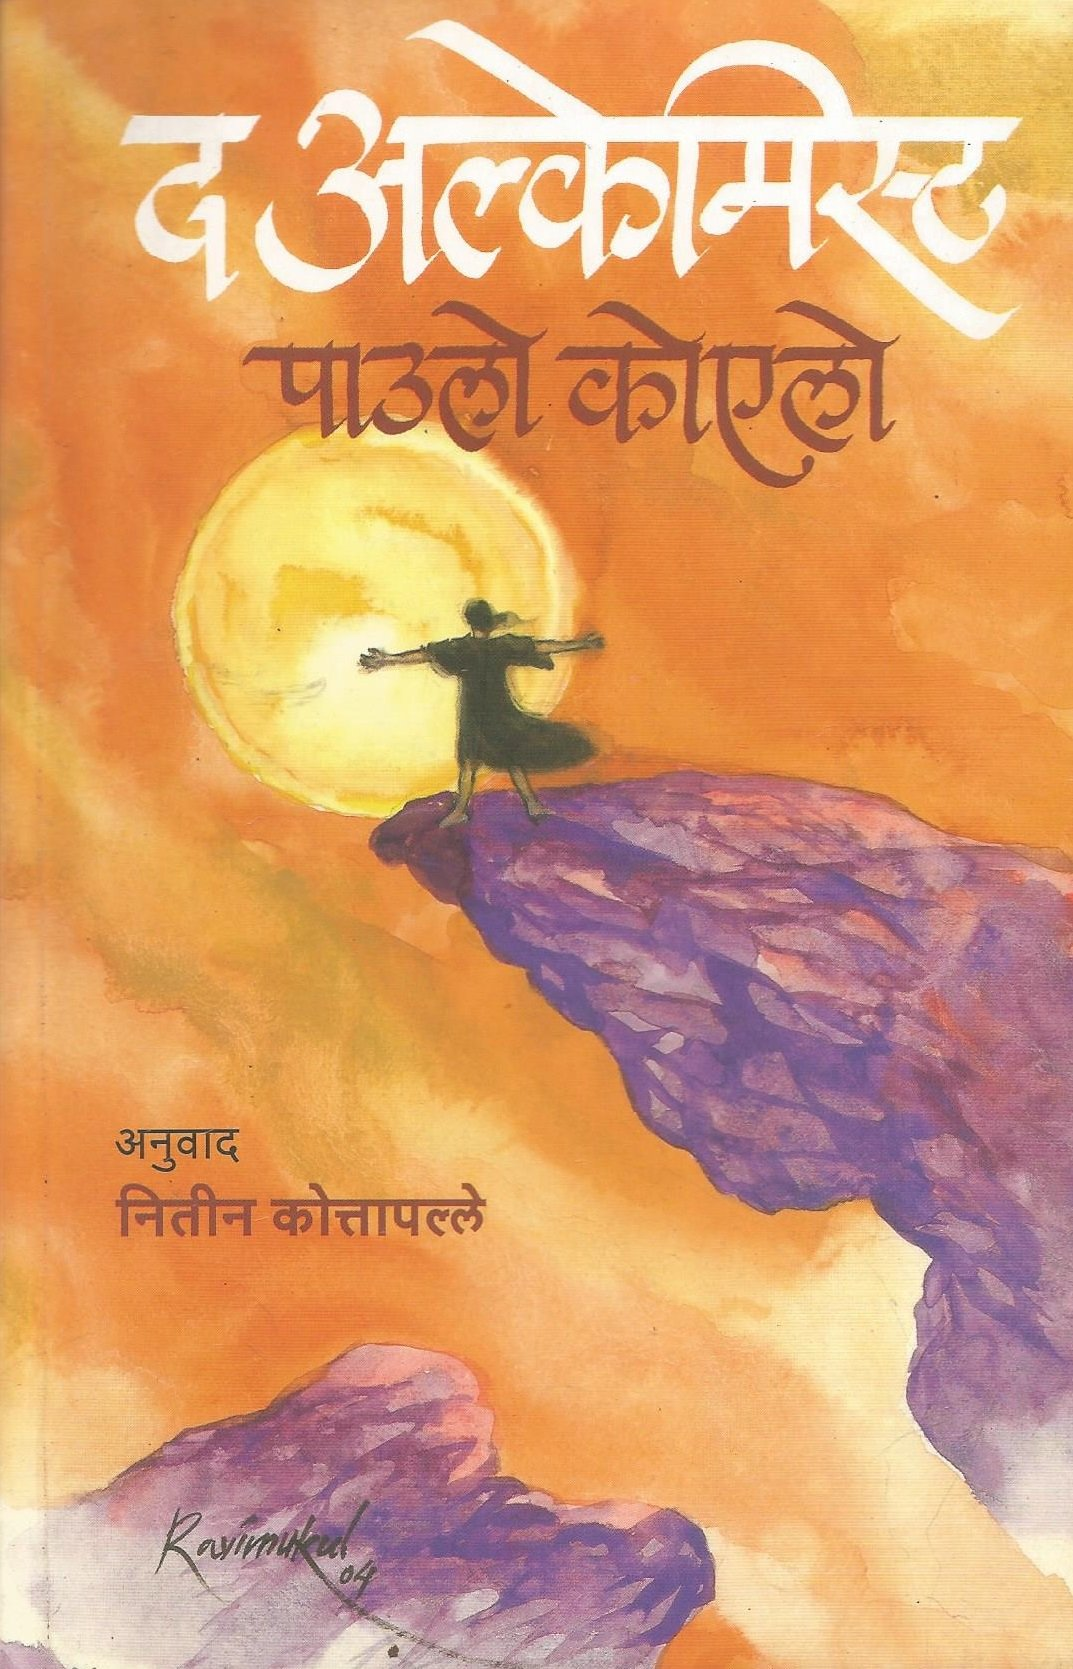 Buy The Alchemist Marathi Book Online At Low Prices In India The